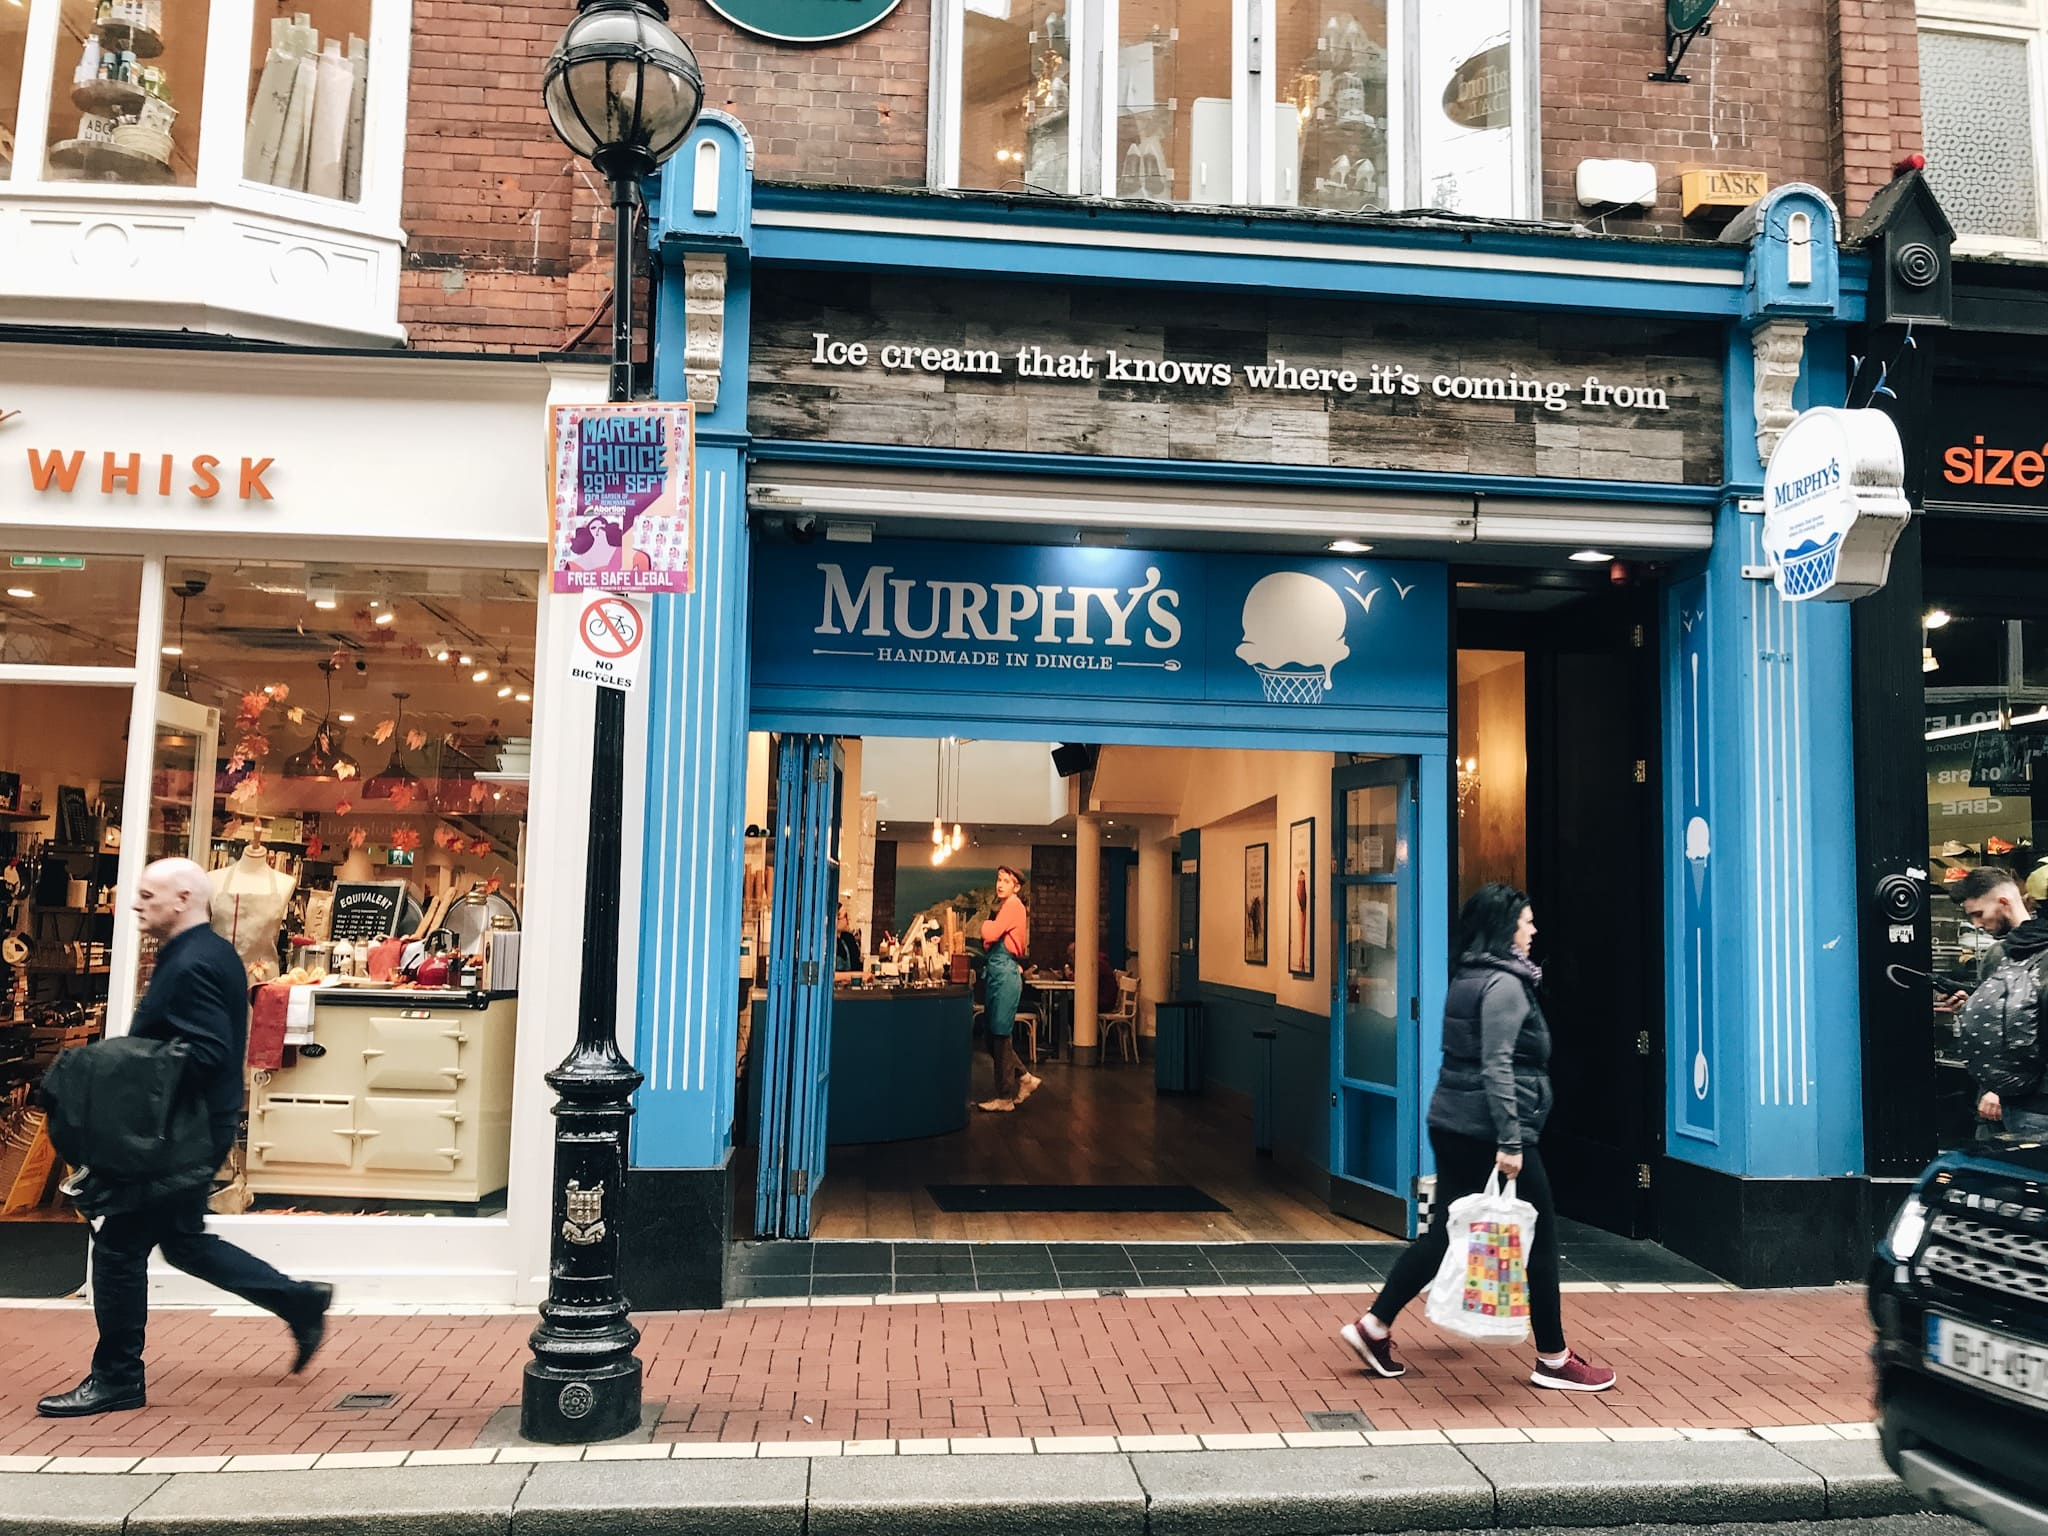 Food Tour Dublin - Murphey's Ice Cream